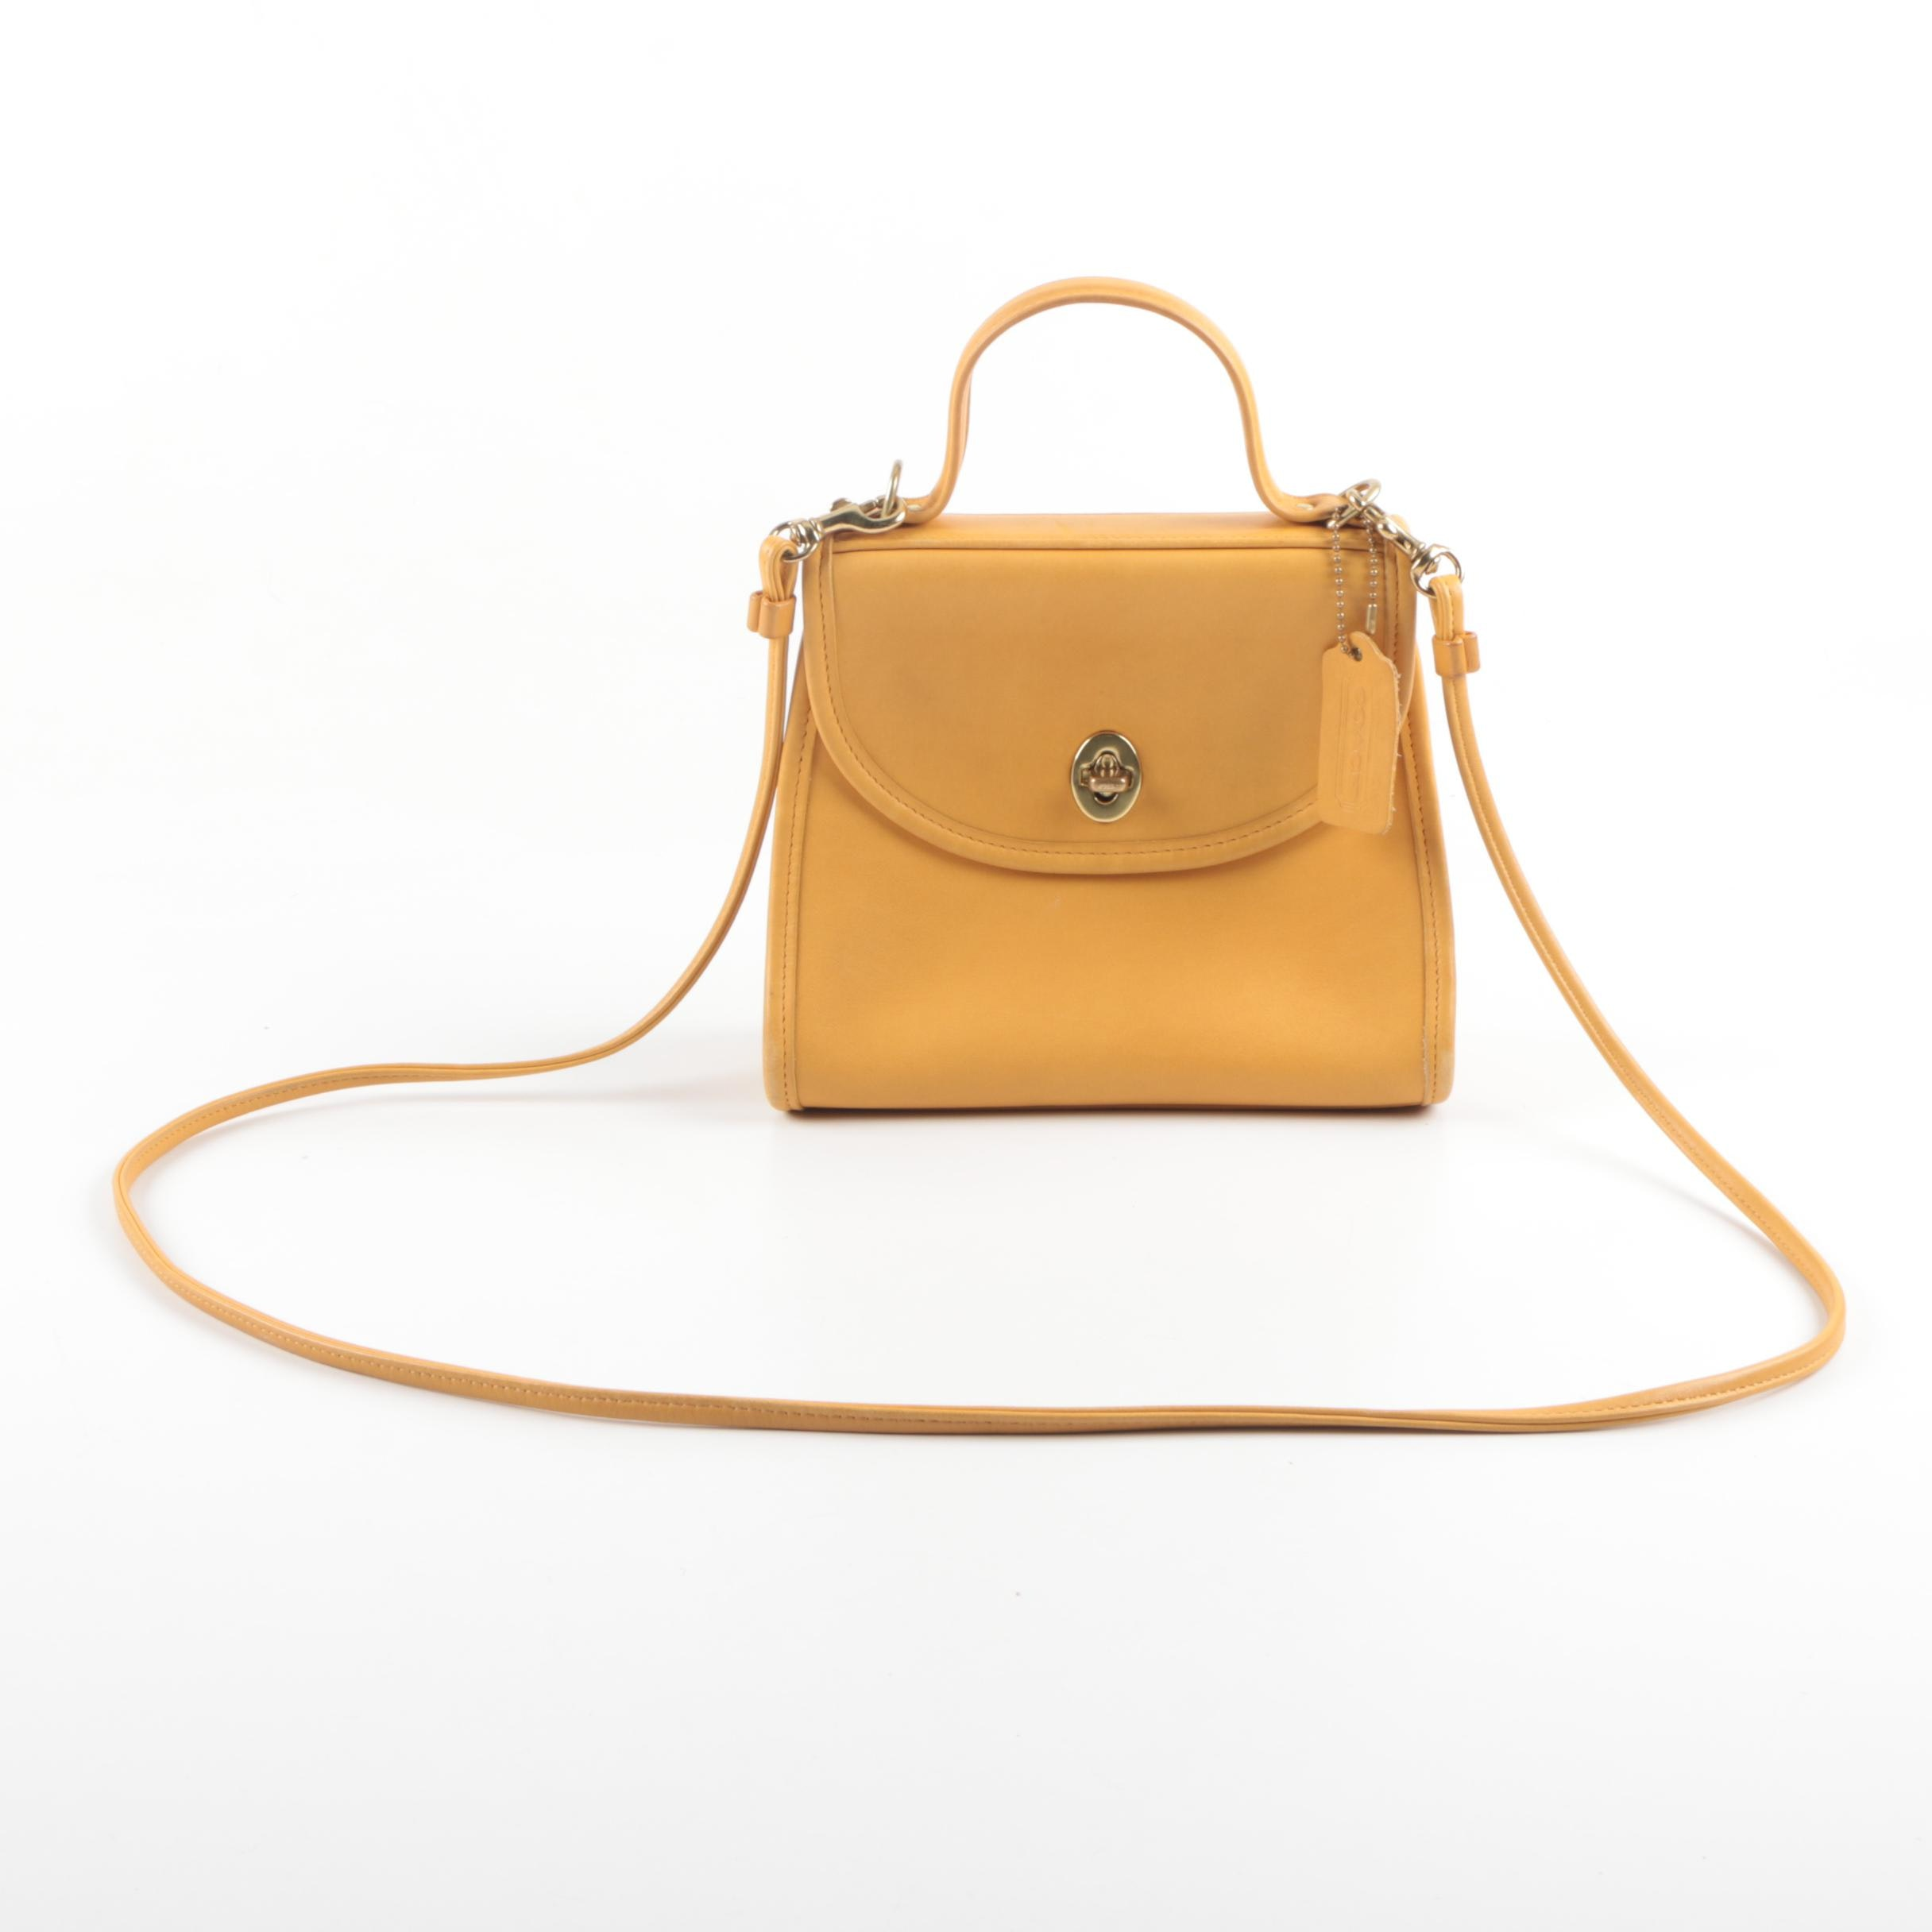 Coach Mustard Yellow Leather Regina Crossbody Bag